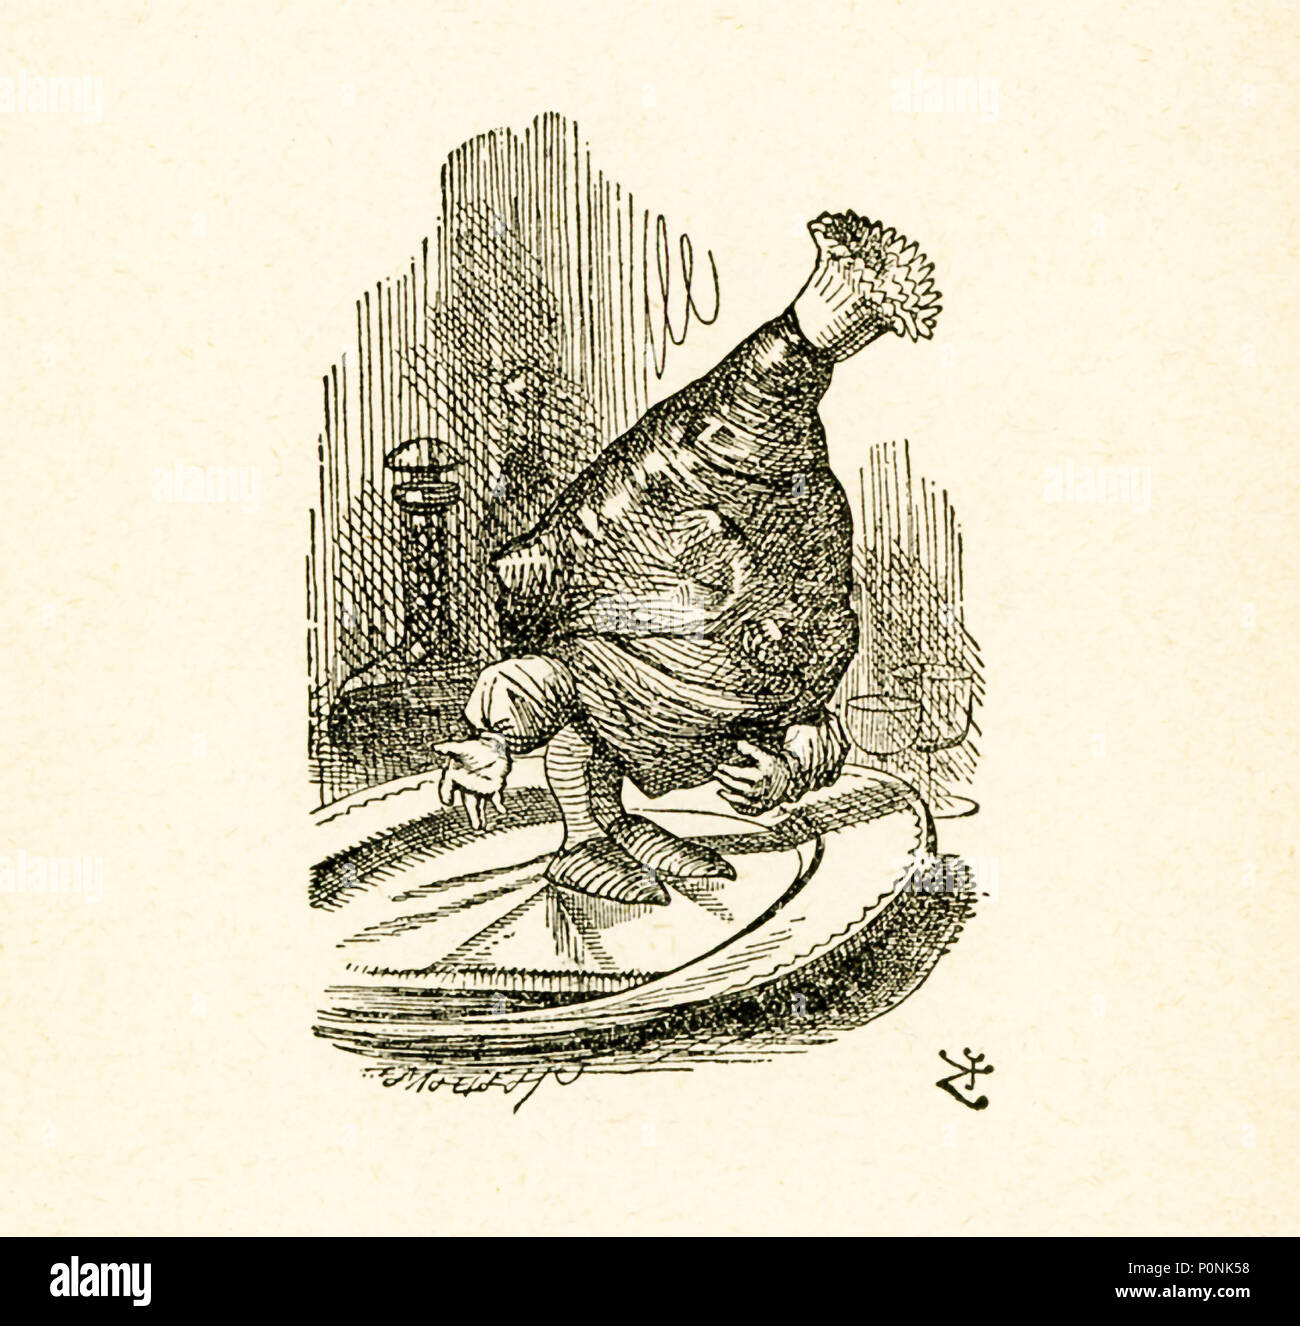 This illustration of a leg of mutton is from 'Through the Looking-Glass and What Alice Found There' by Lewis Carroll (Charles Lutwidge Dodgson), who wrote this novel in 1871 as a sequel to 'Alice's Adventures in Wonderland.' - Stock Image